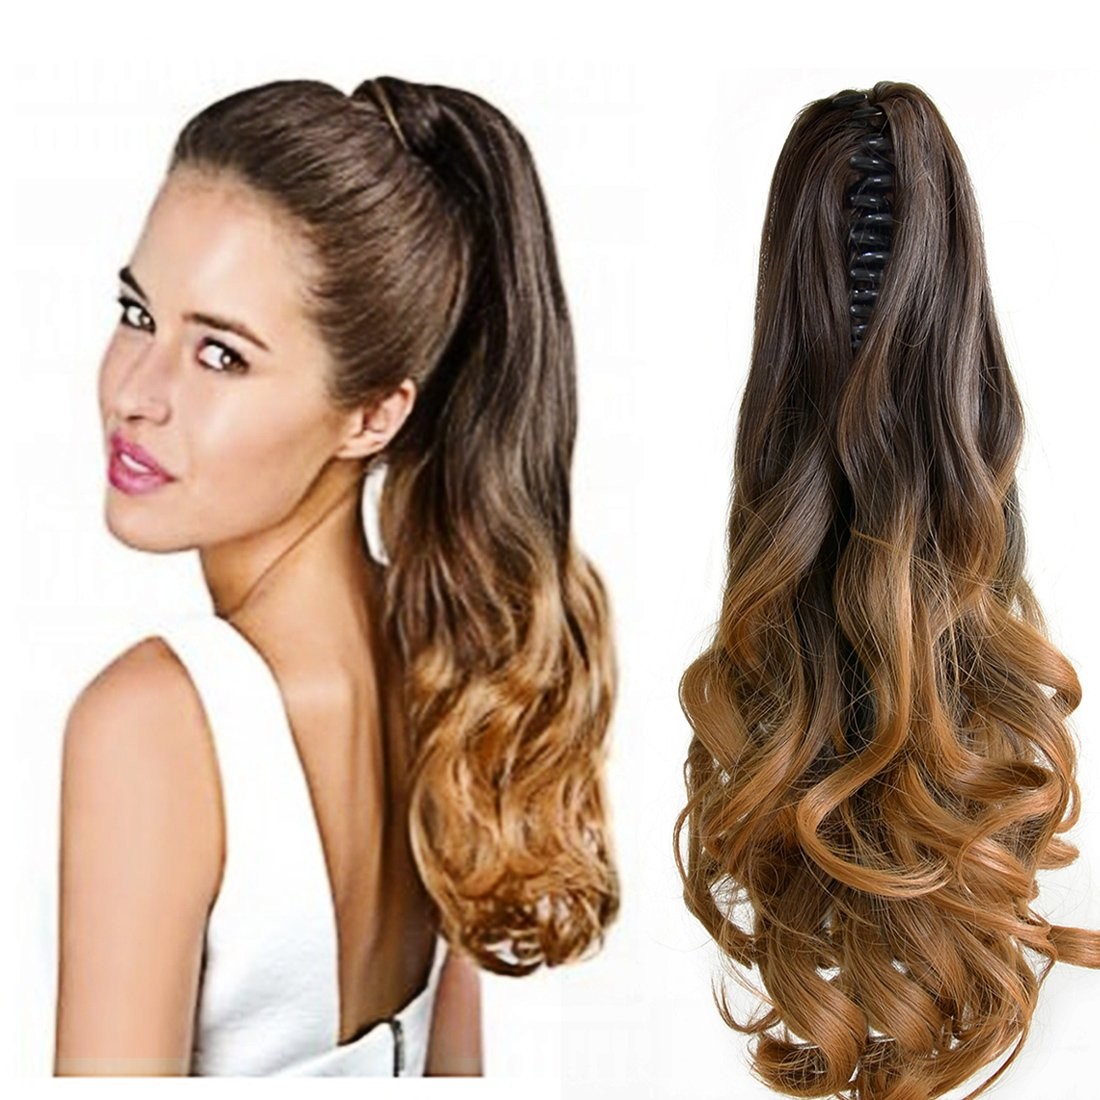 "Neverland Beauty 20""(50cm) Natural Ombre Look Two Tone Long Big Wavy Claw Curly Ponytail Clip in Hair Extensions 6#/27#"